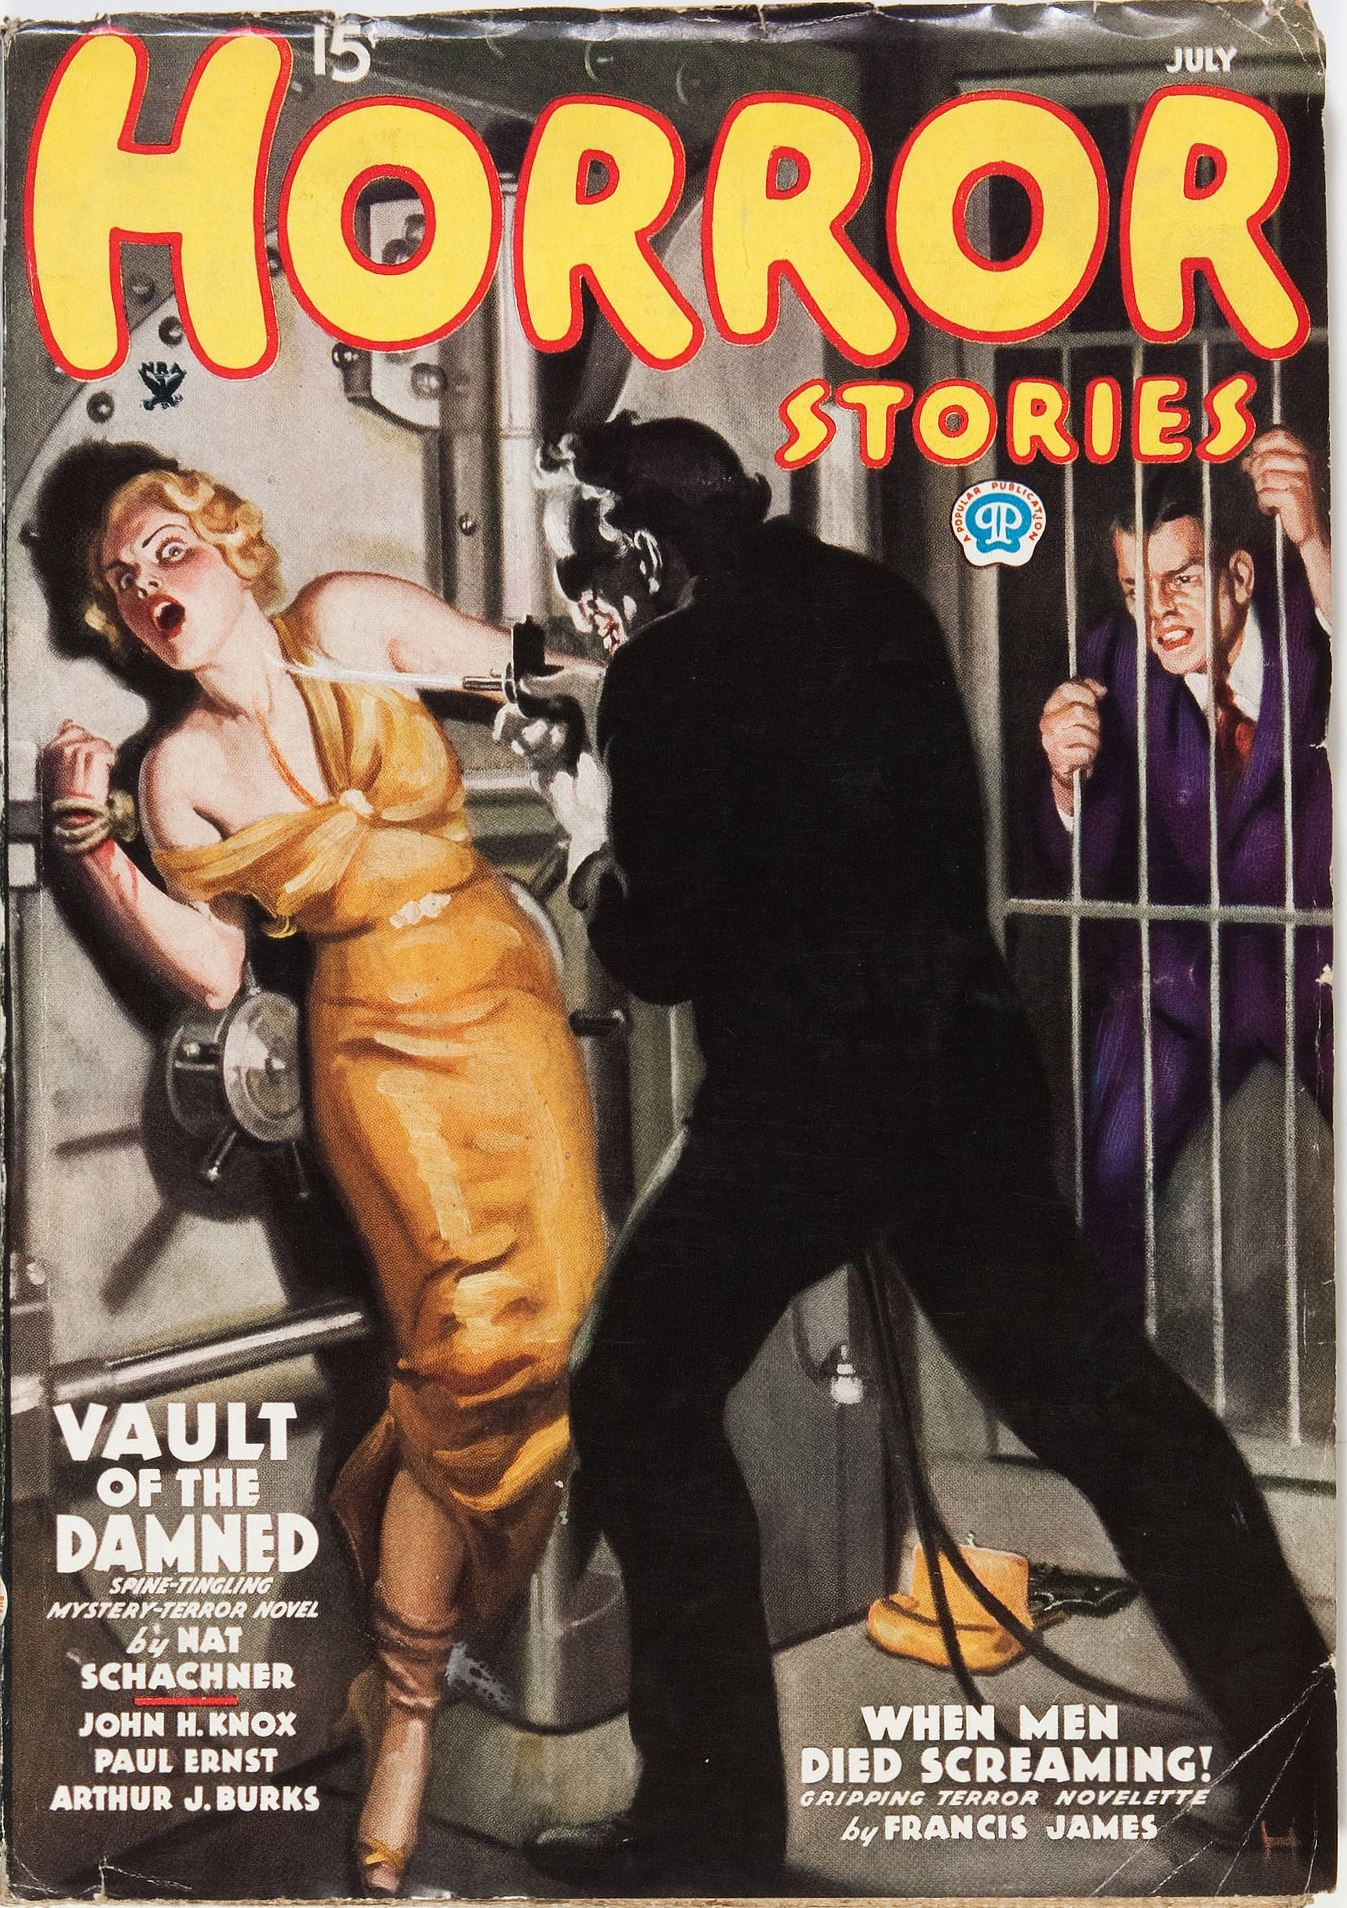 Horror Stories July 1935